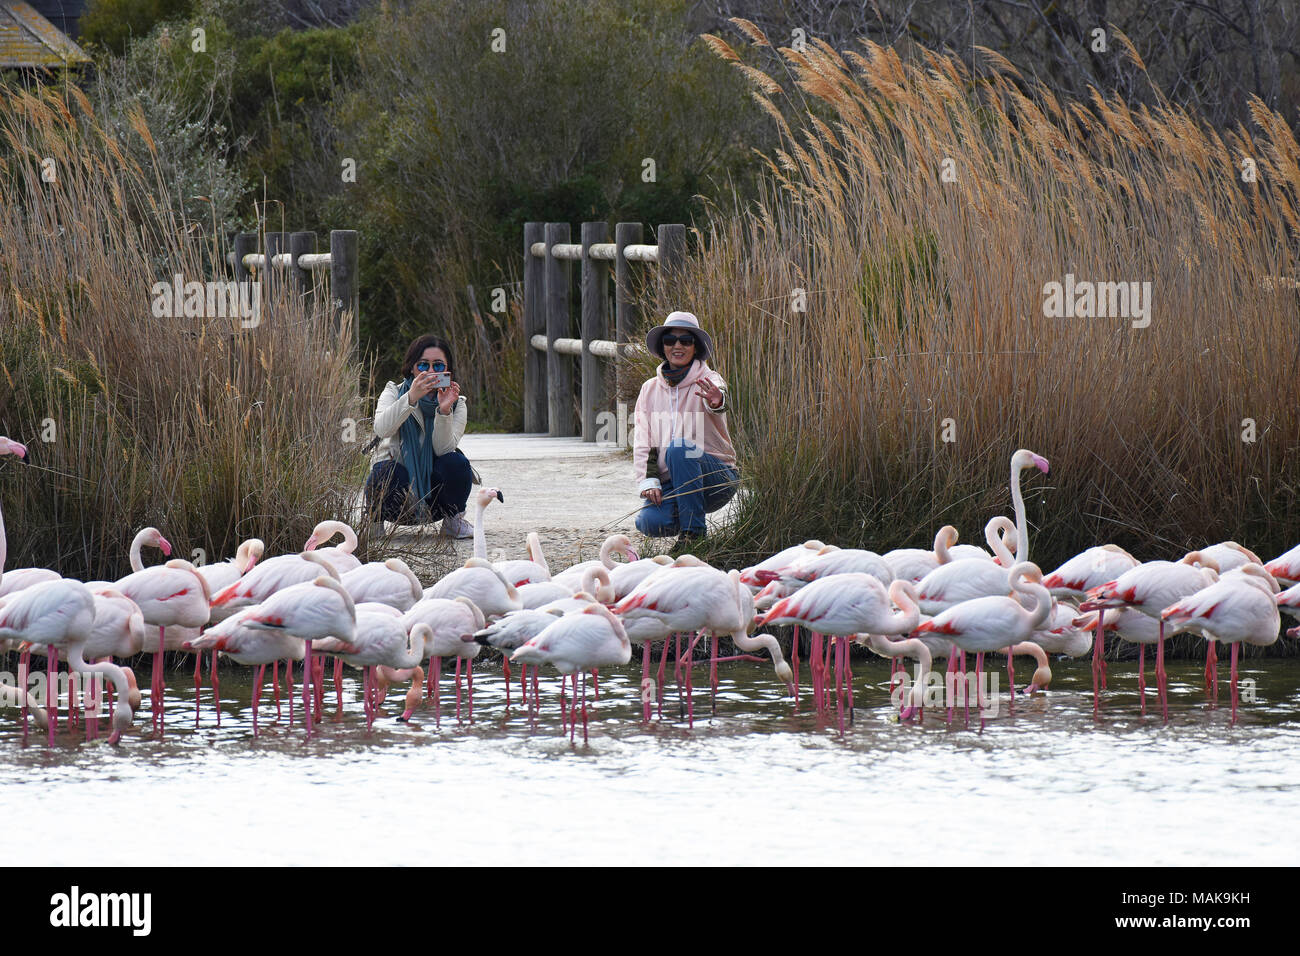 Female tourists posing with the pink Flamingos in the ornithological park Camargue, France. - Stock Image